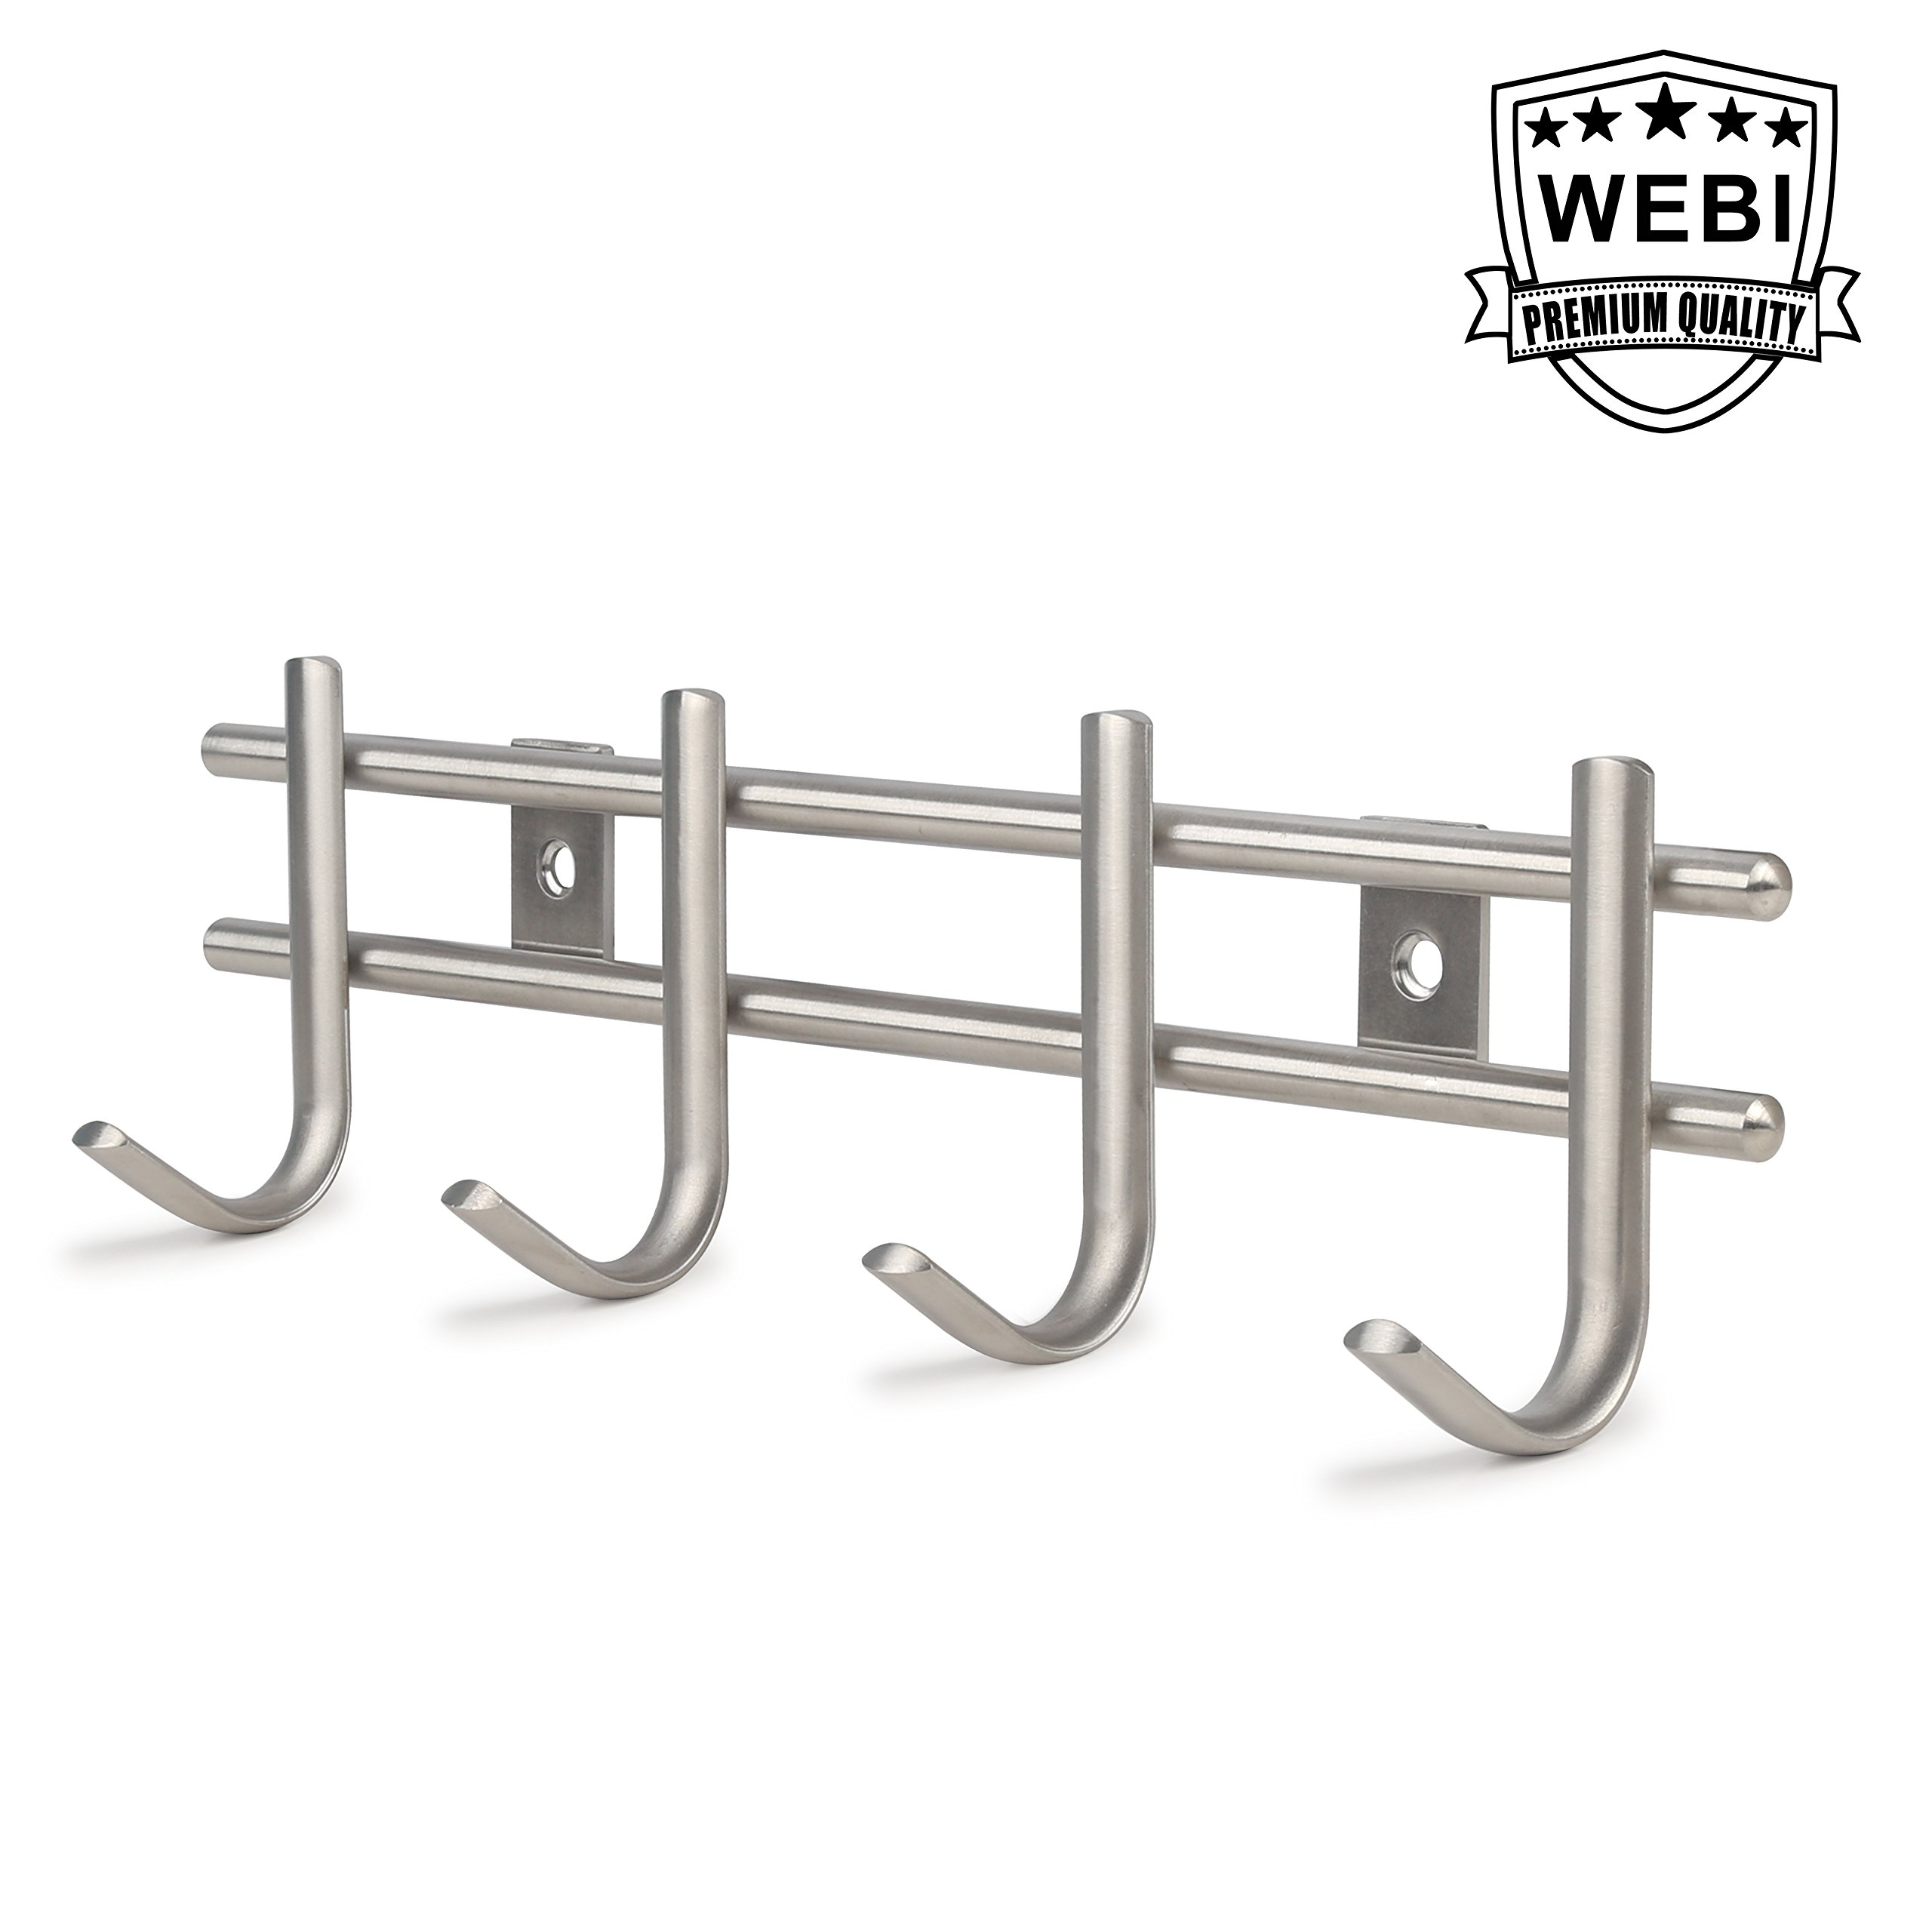 WEBI Bath Kitchen Towel Hook, SUS 304 Sturdy Robe Hat Coat Garment Rack Rail Hanger Holder, Wall Mount Closet Clothing Bathroom Garage, Brushed finish,J-II04-1